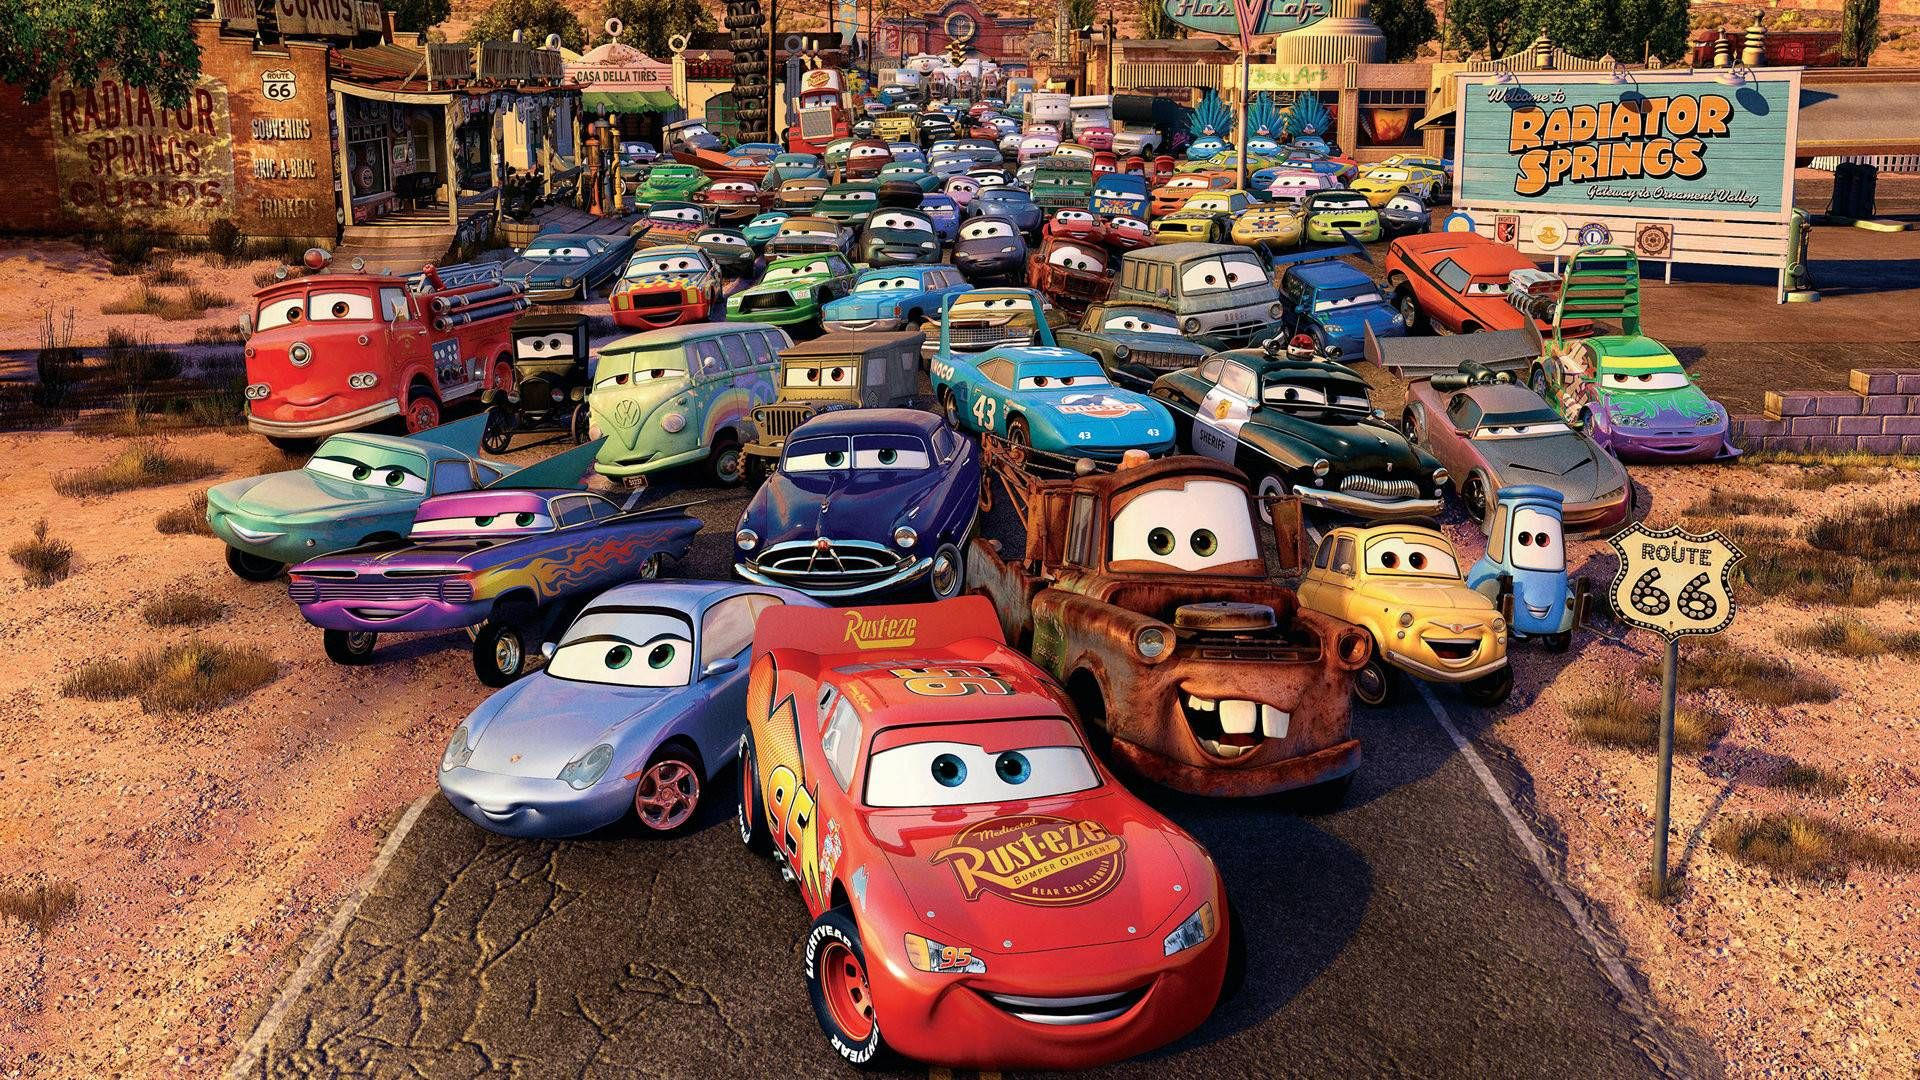 Related Image Disney Cars Wallpaper Cars 2006 Disney Pixar Cars